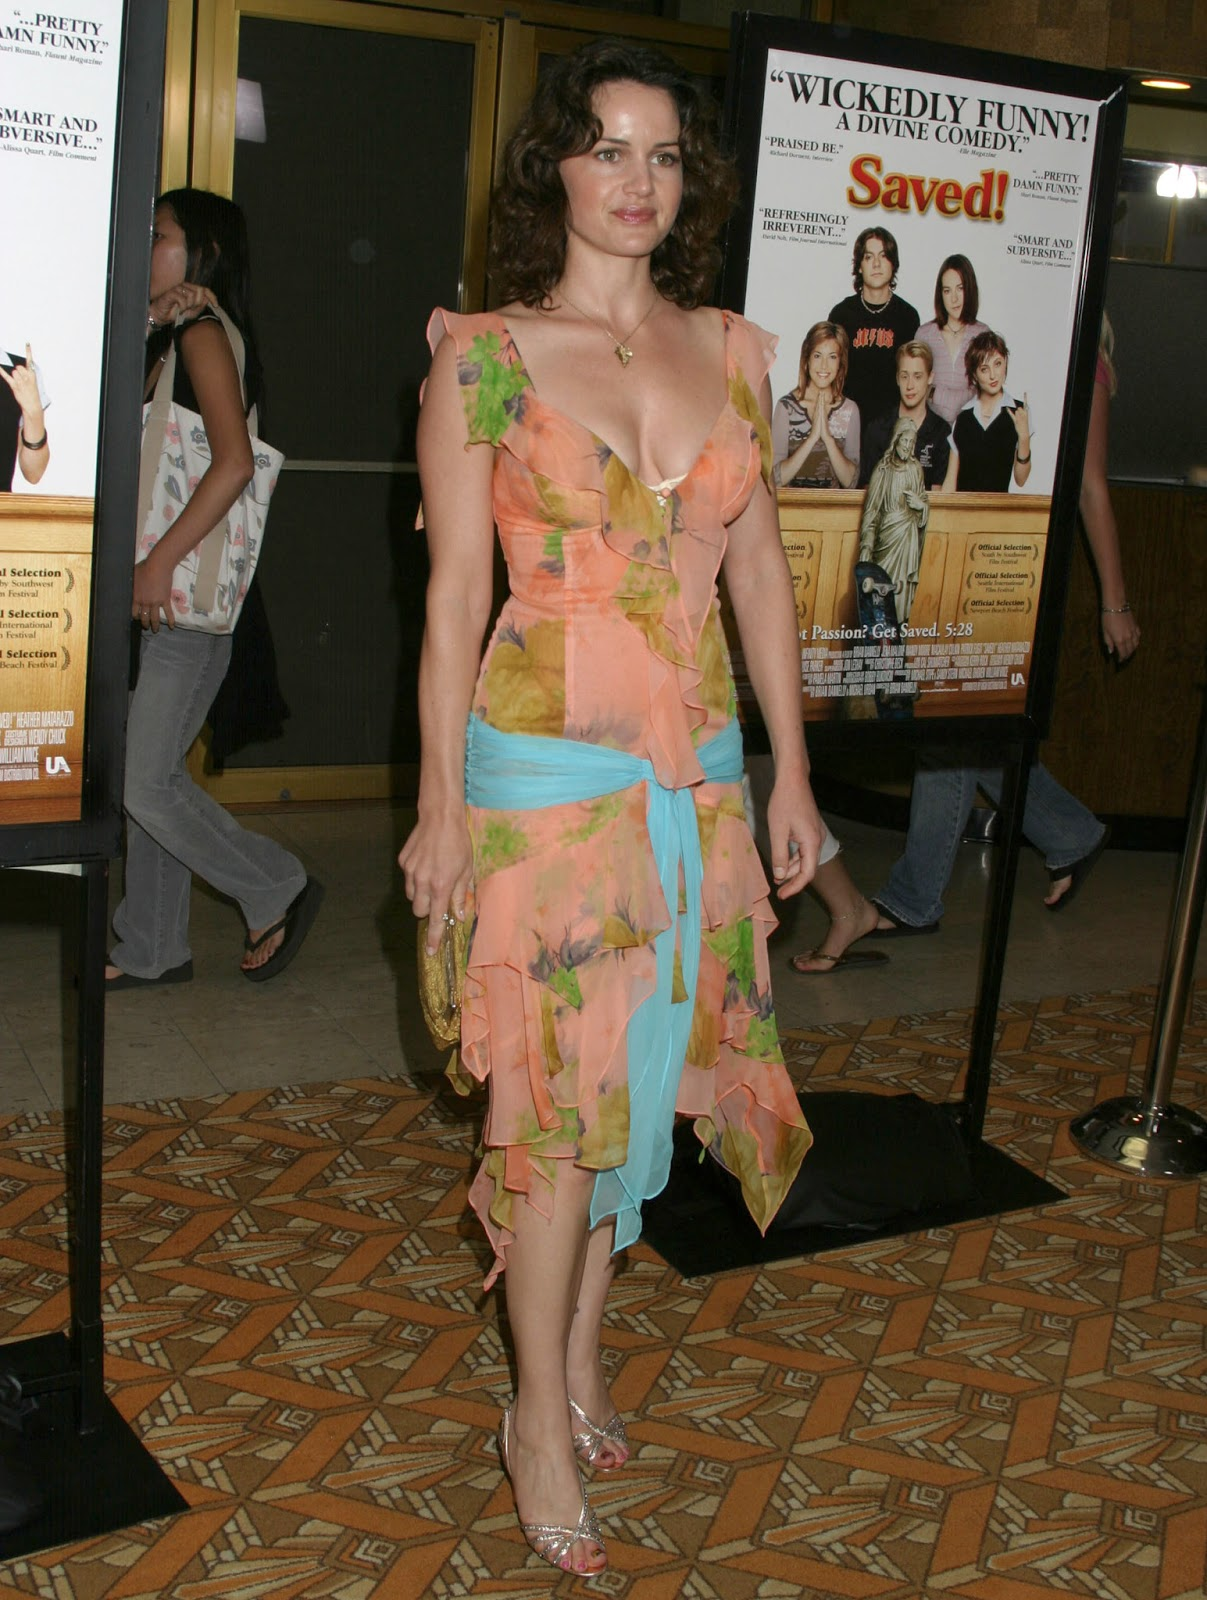 Celebrites Carla Gugino nude (51 photo), Topless, Hot, Twitter, legs 2006